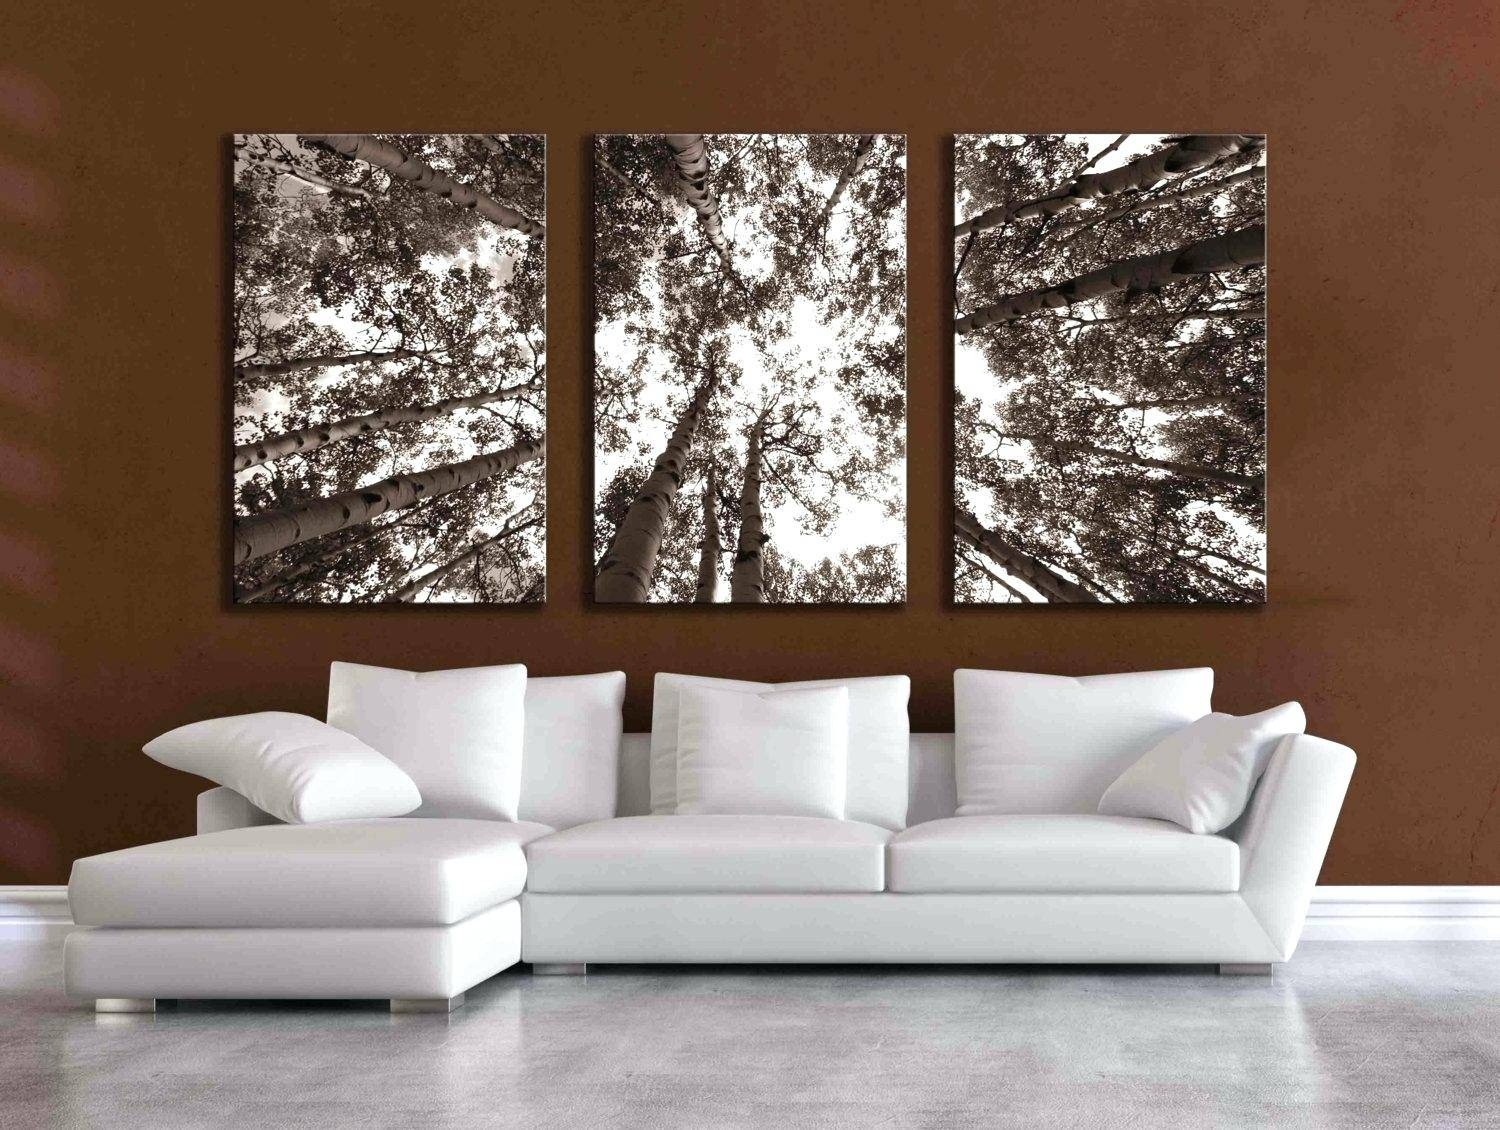 Adorable Framed Wall Art For Living Room Large Pictures Uk India Regarding 2017 3d Wall Art Canvas (View 16 of 20)